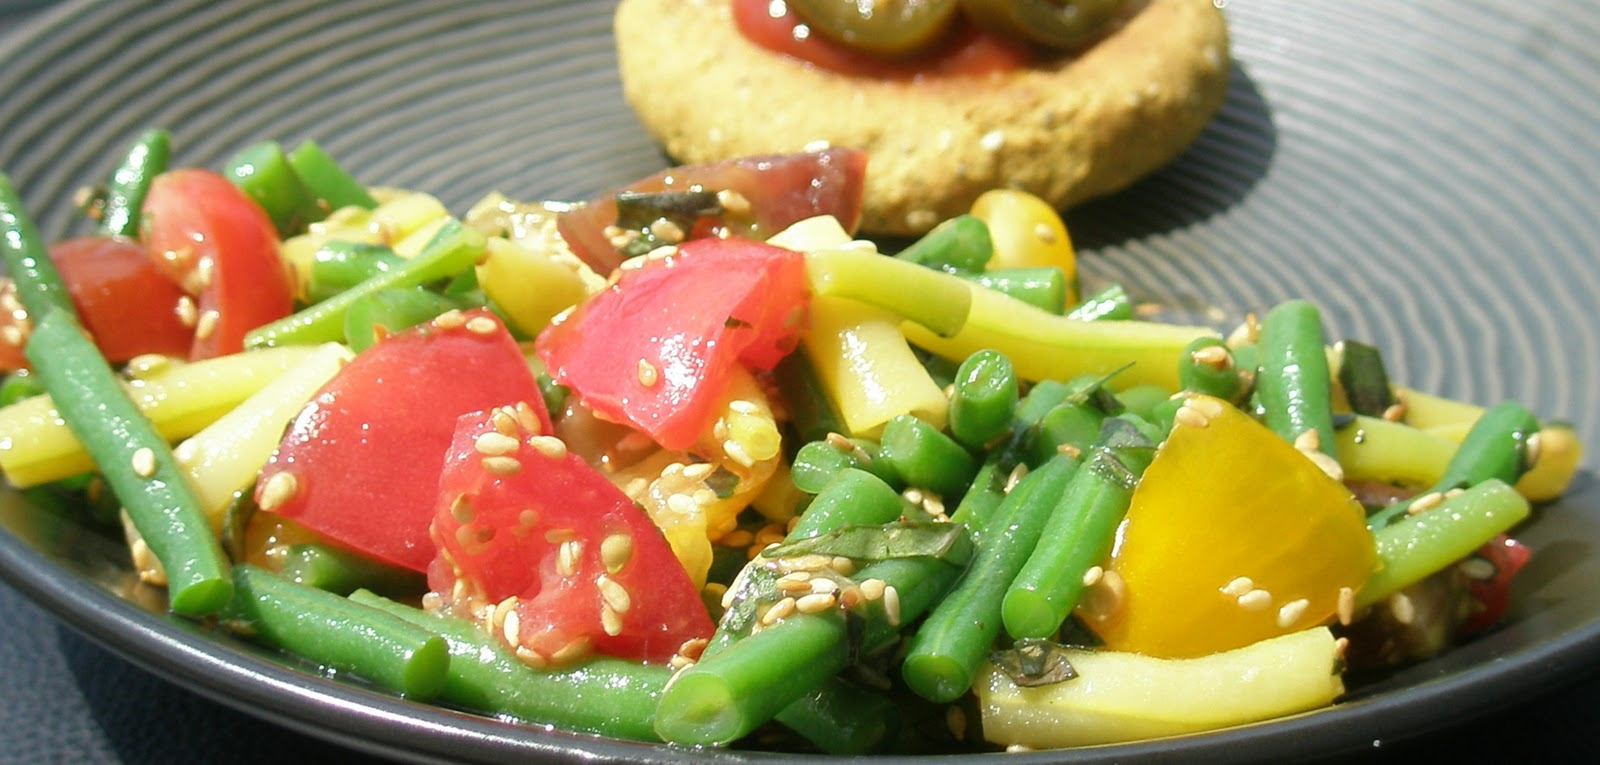 Craving Sustenance: Simple Summer Vegetable Stir-fry